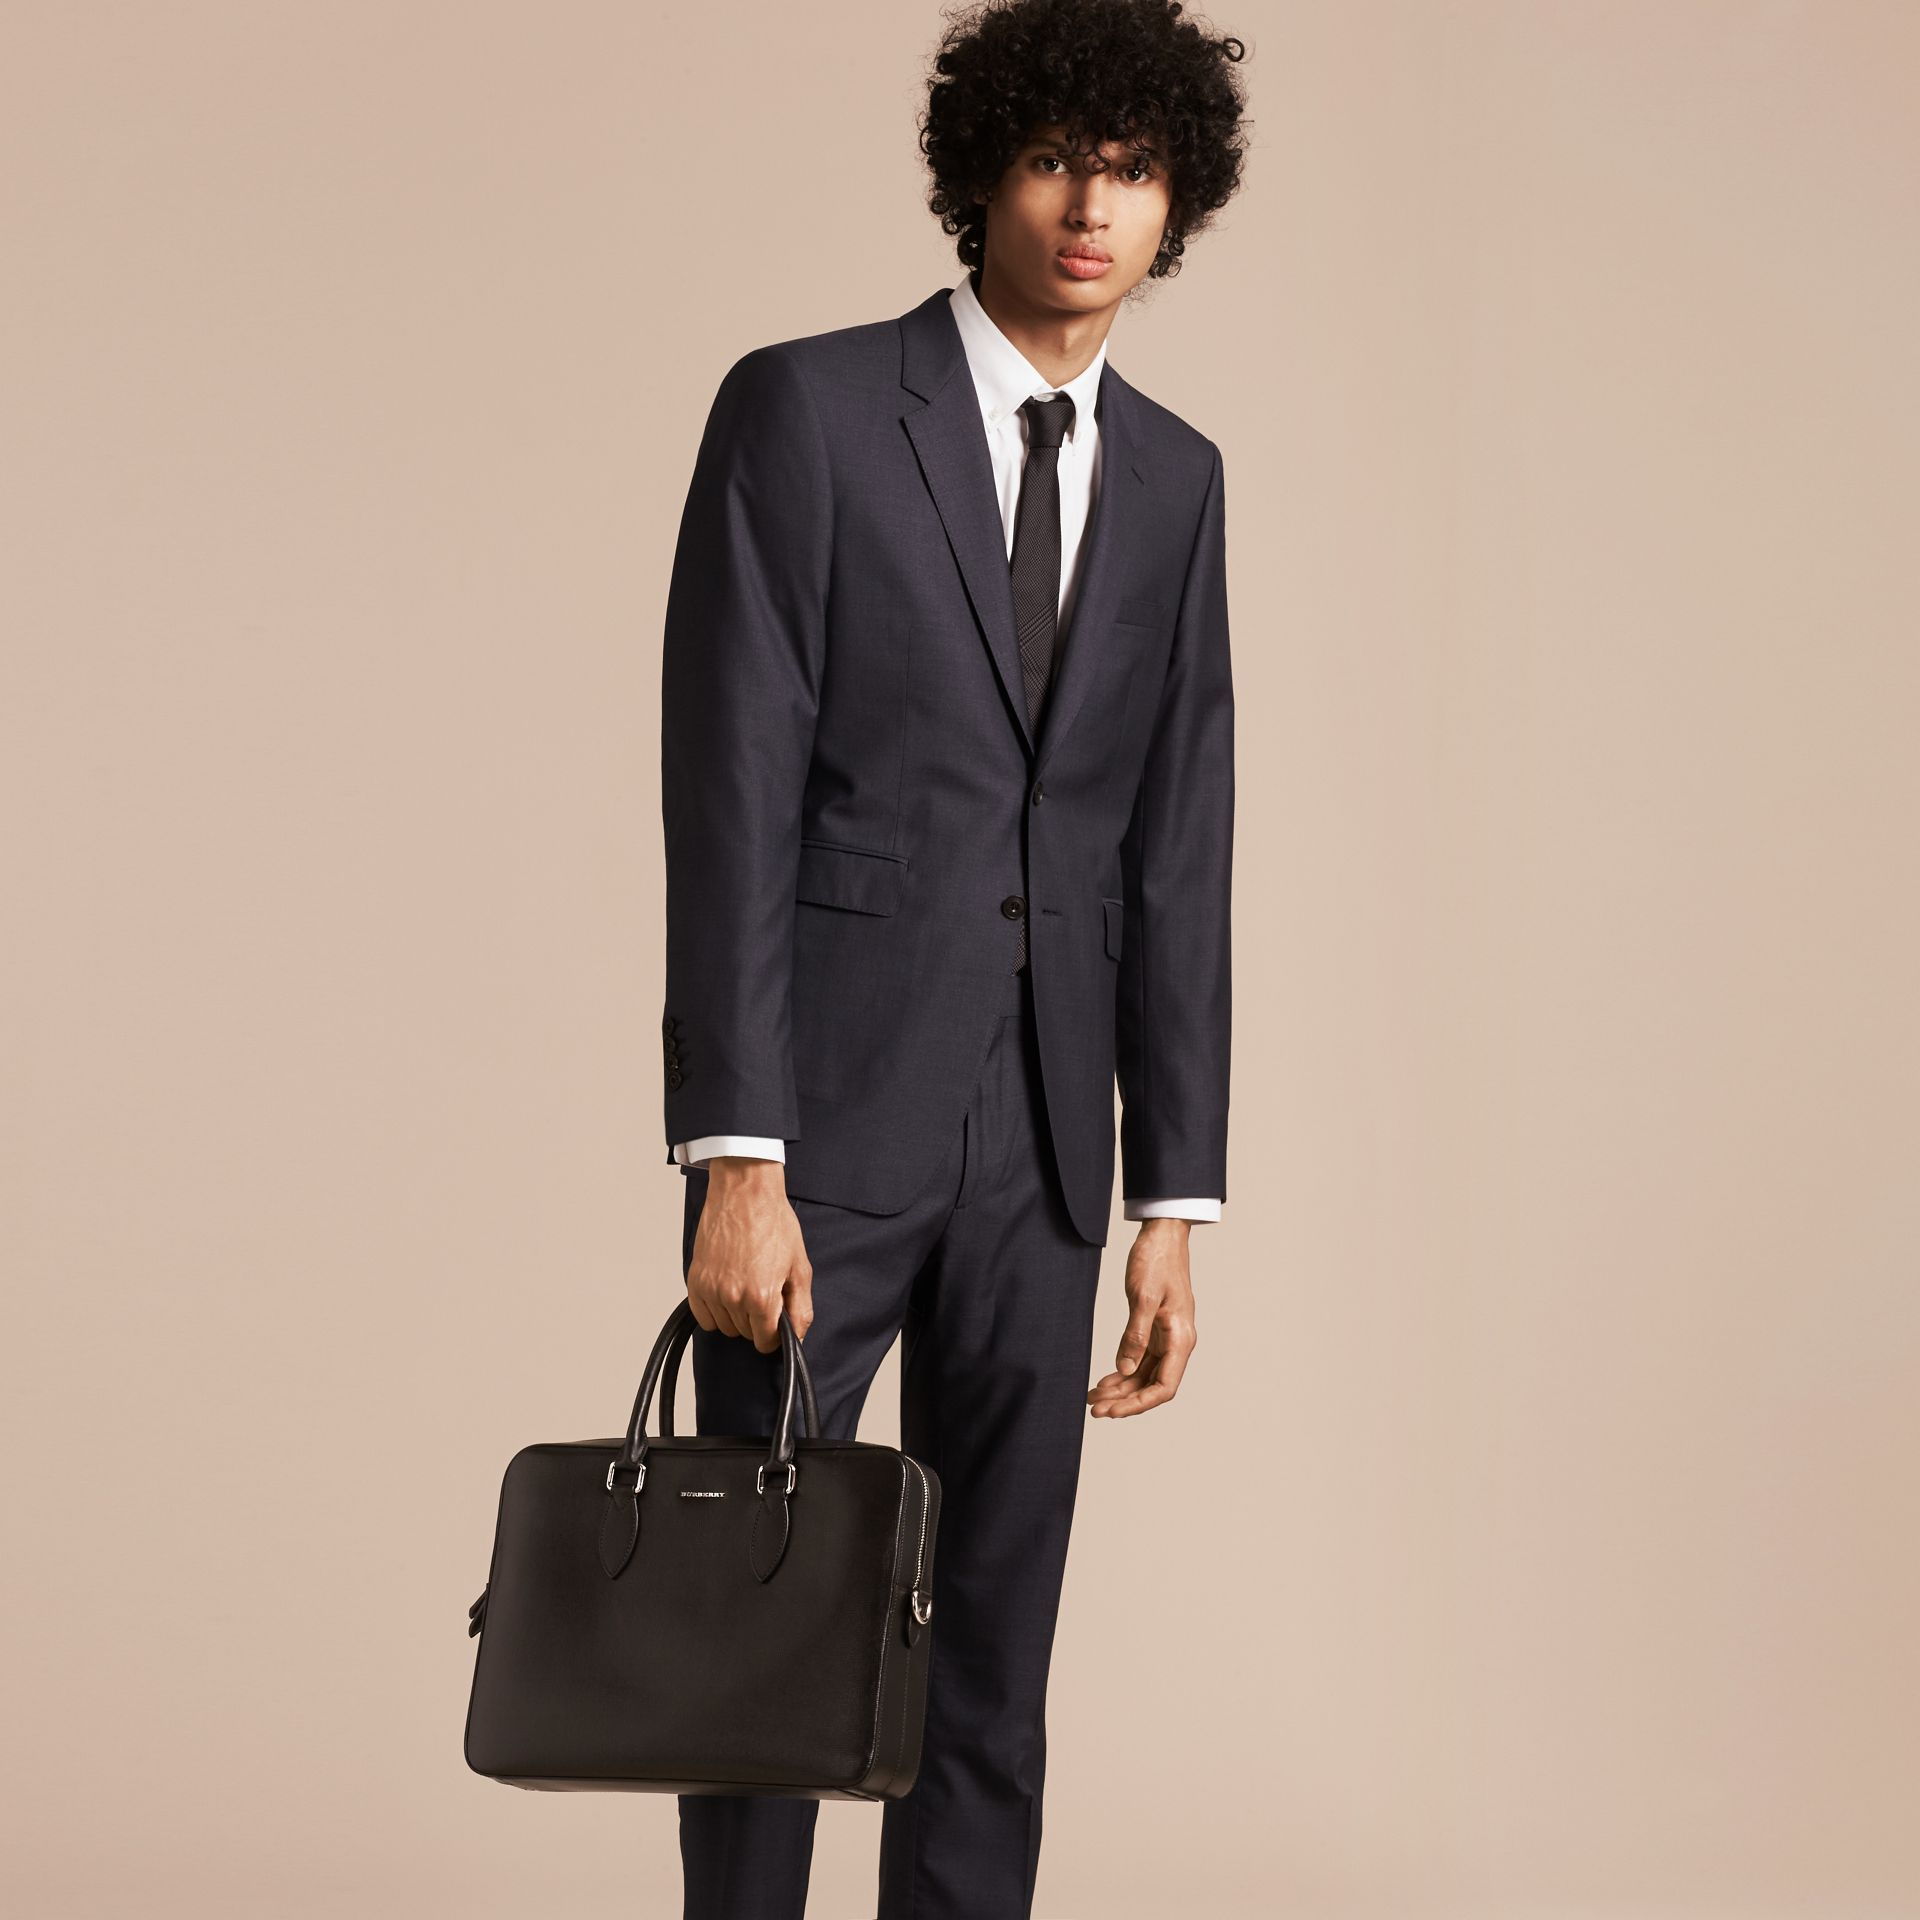 London Leather Briefcase in Black - Men | Burberry - gallery image 3